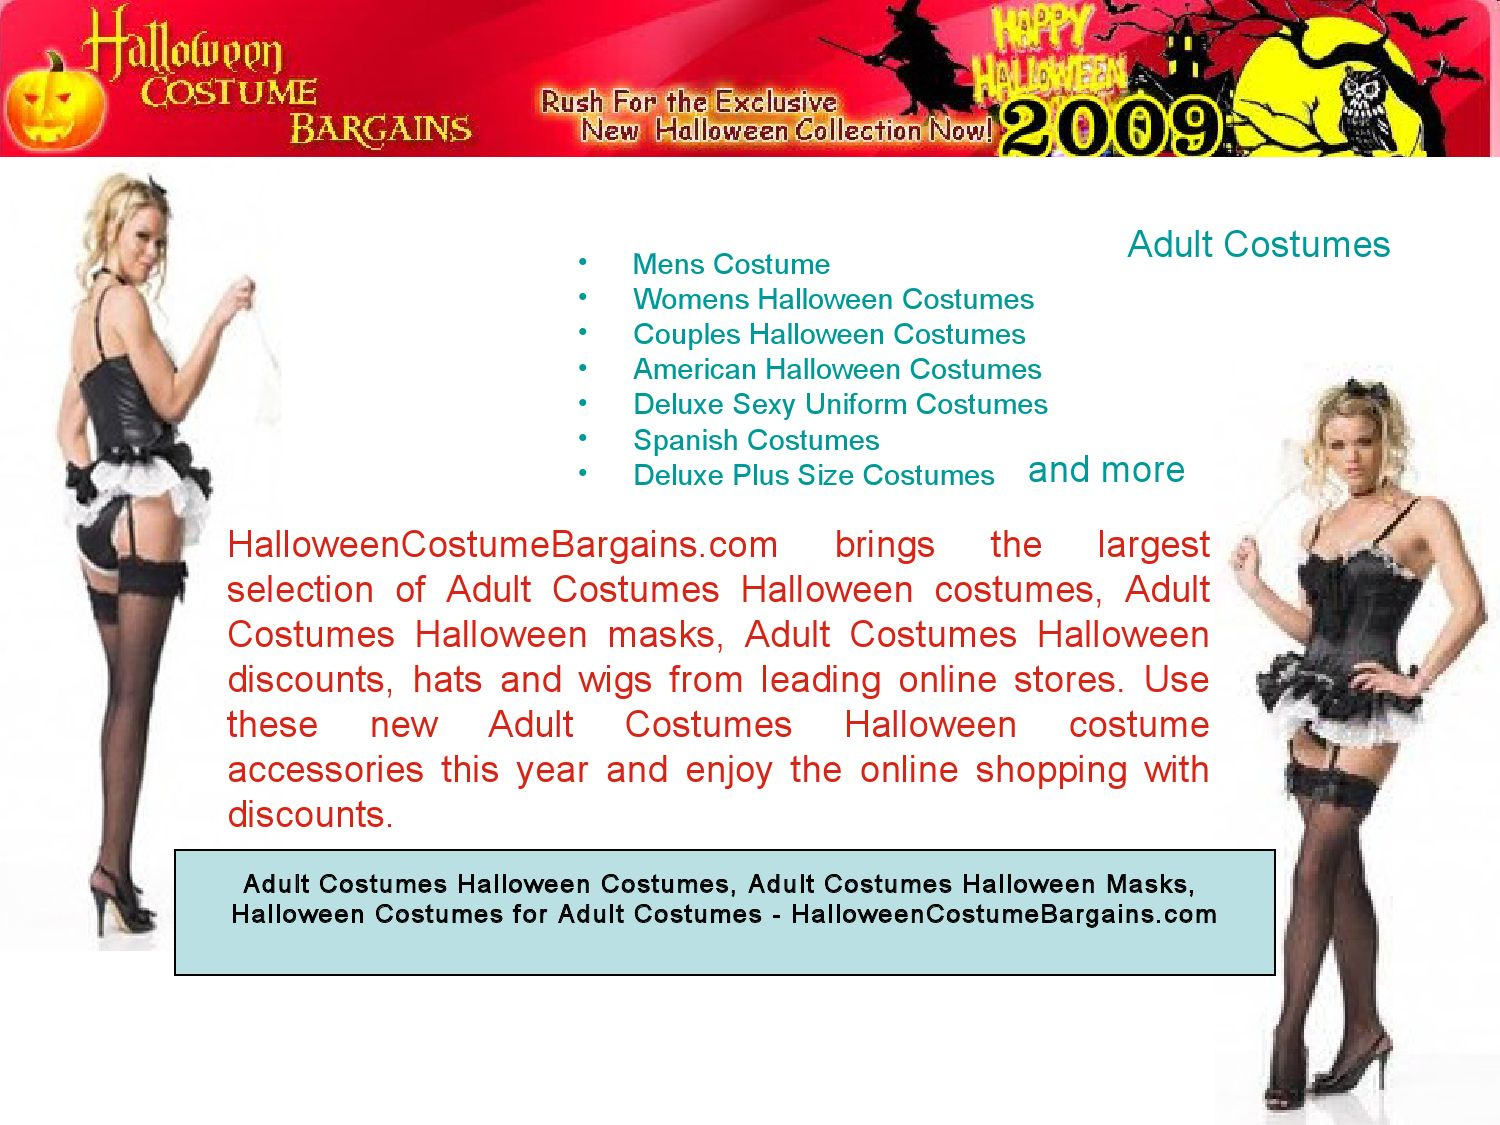 adult costumes halloween costumes by andry andry issuu